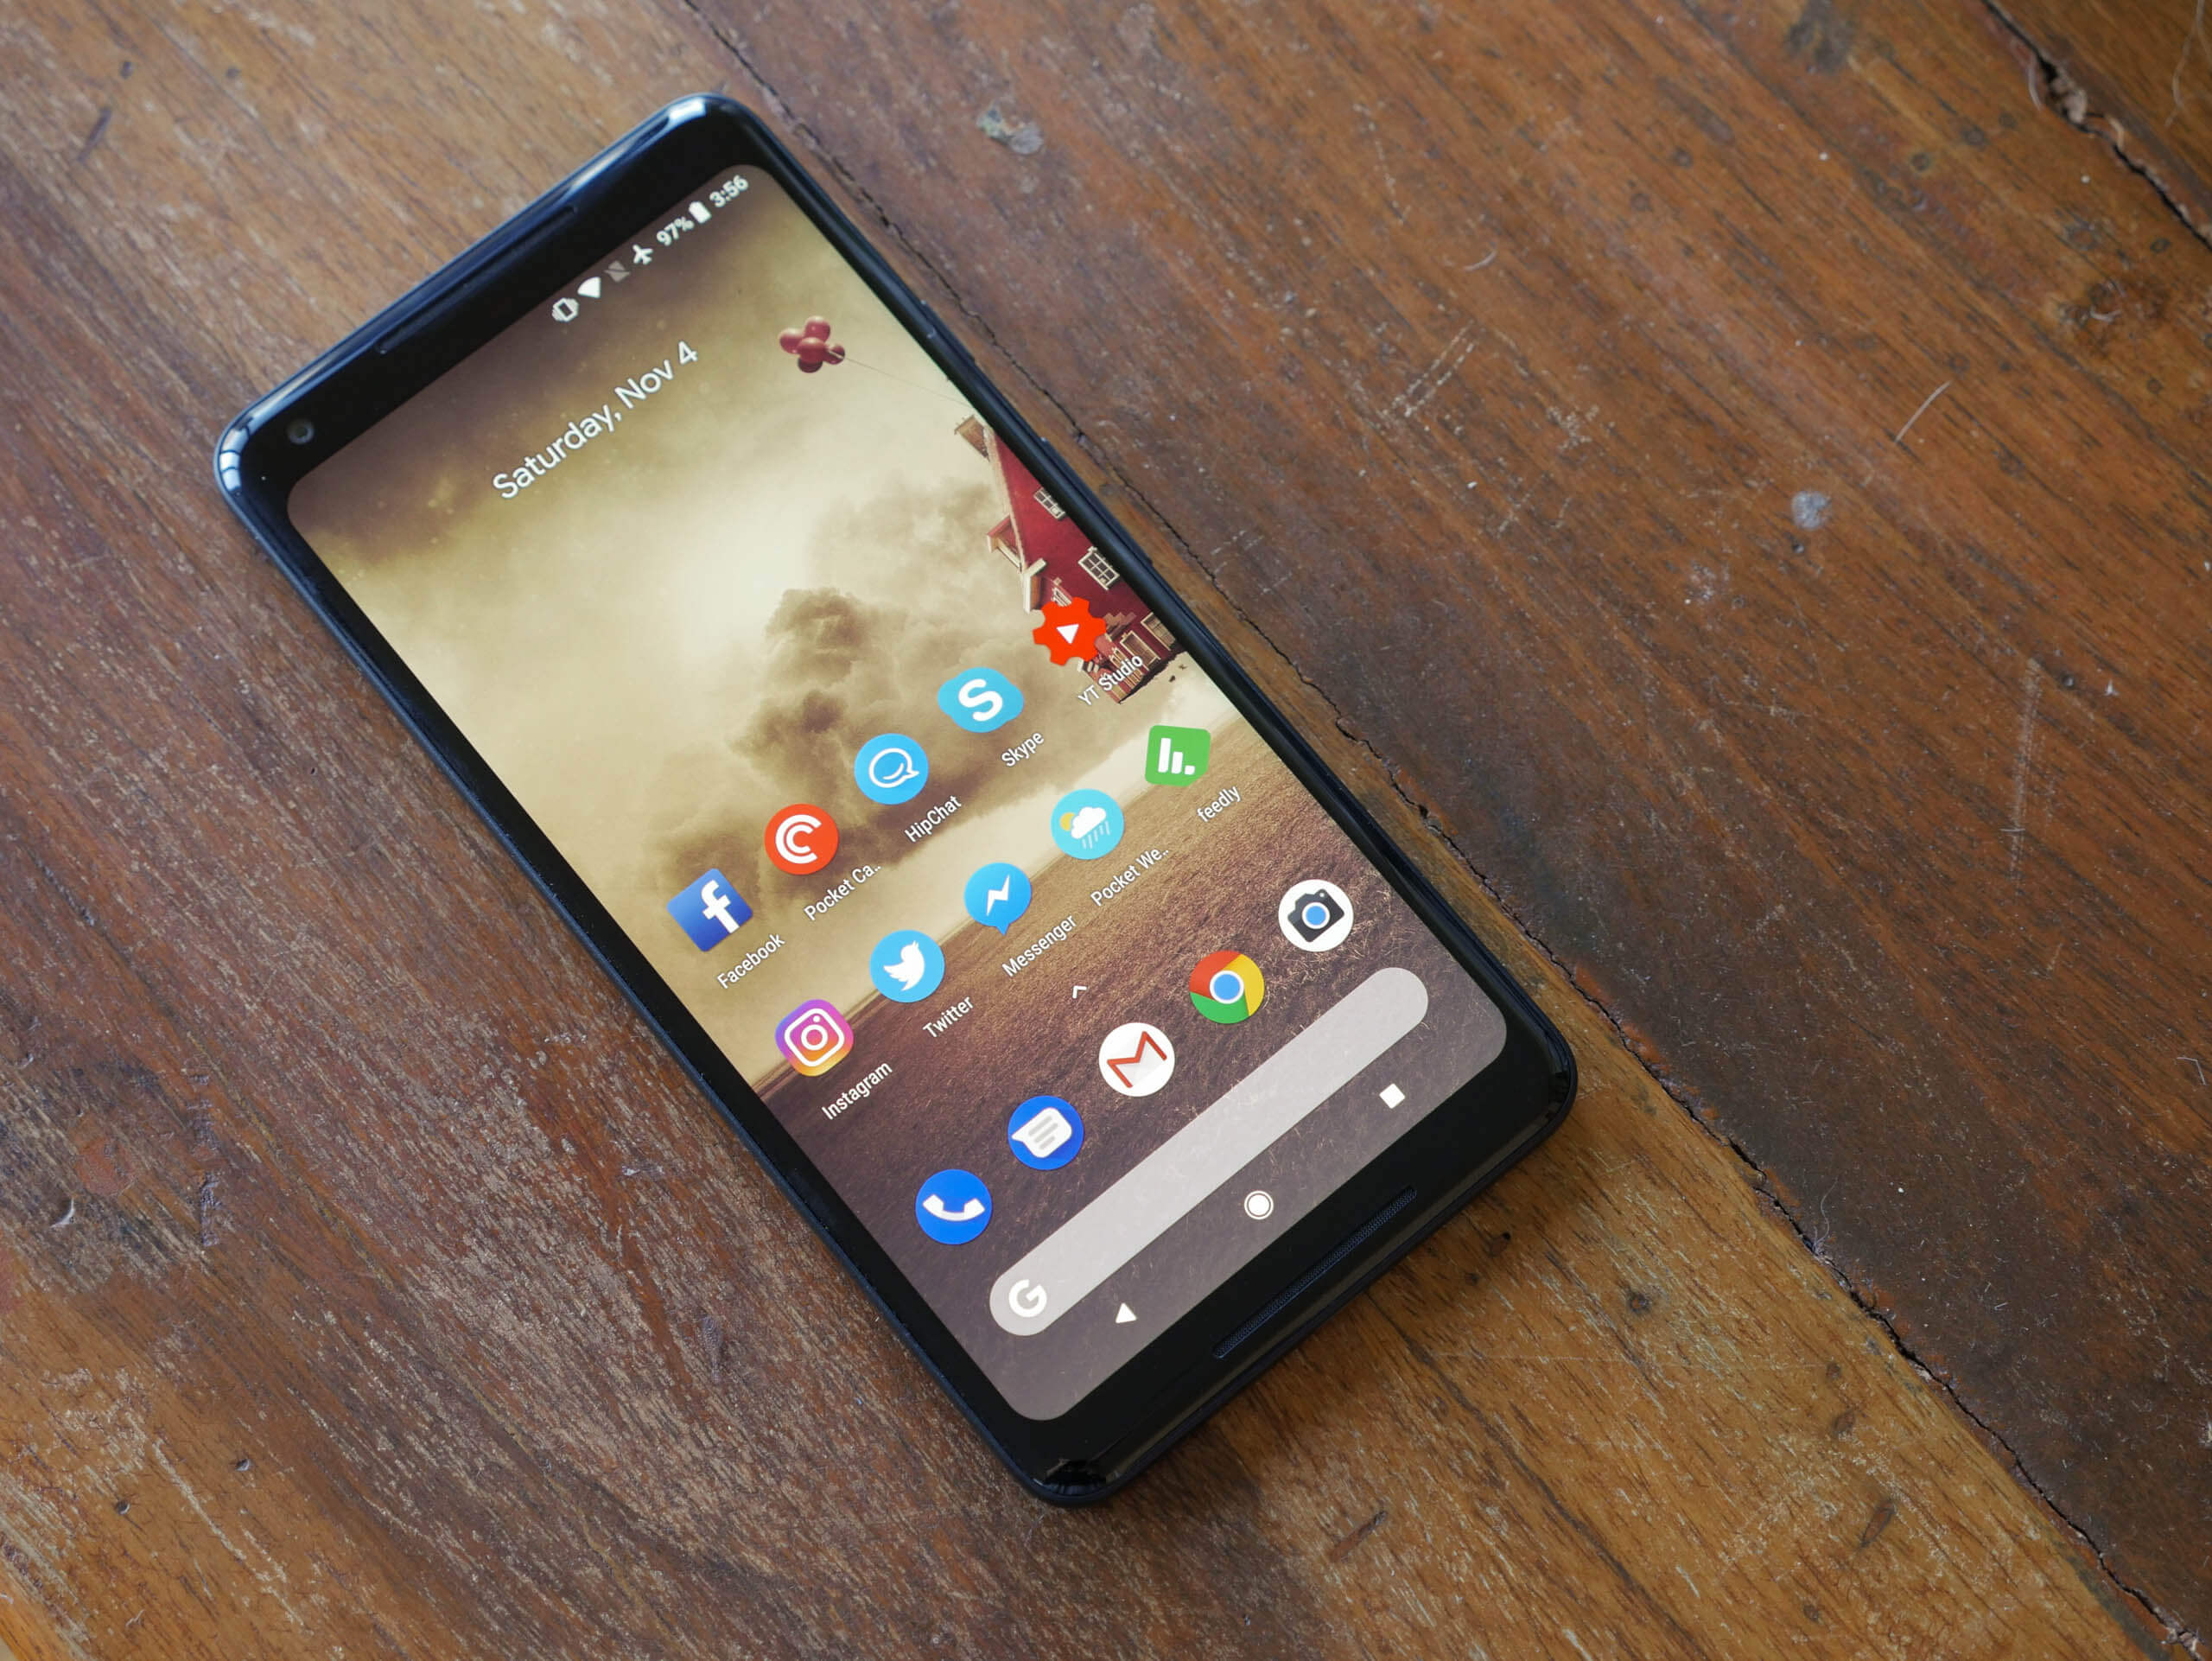 Google is reportedly looking to shift Pixel production from